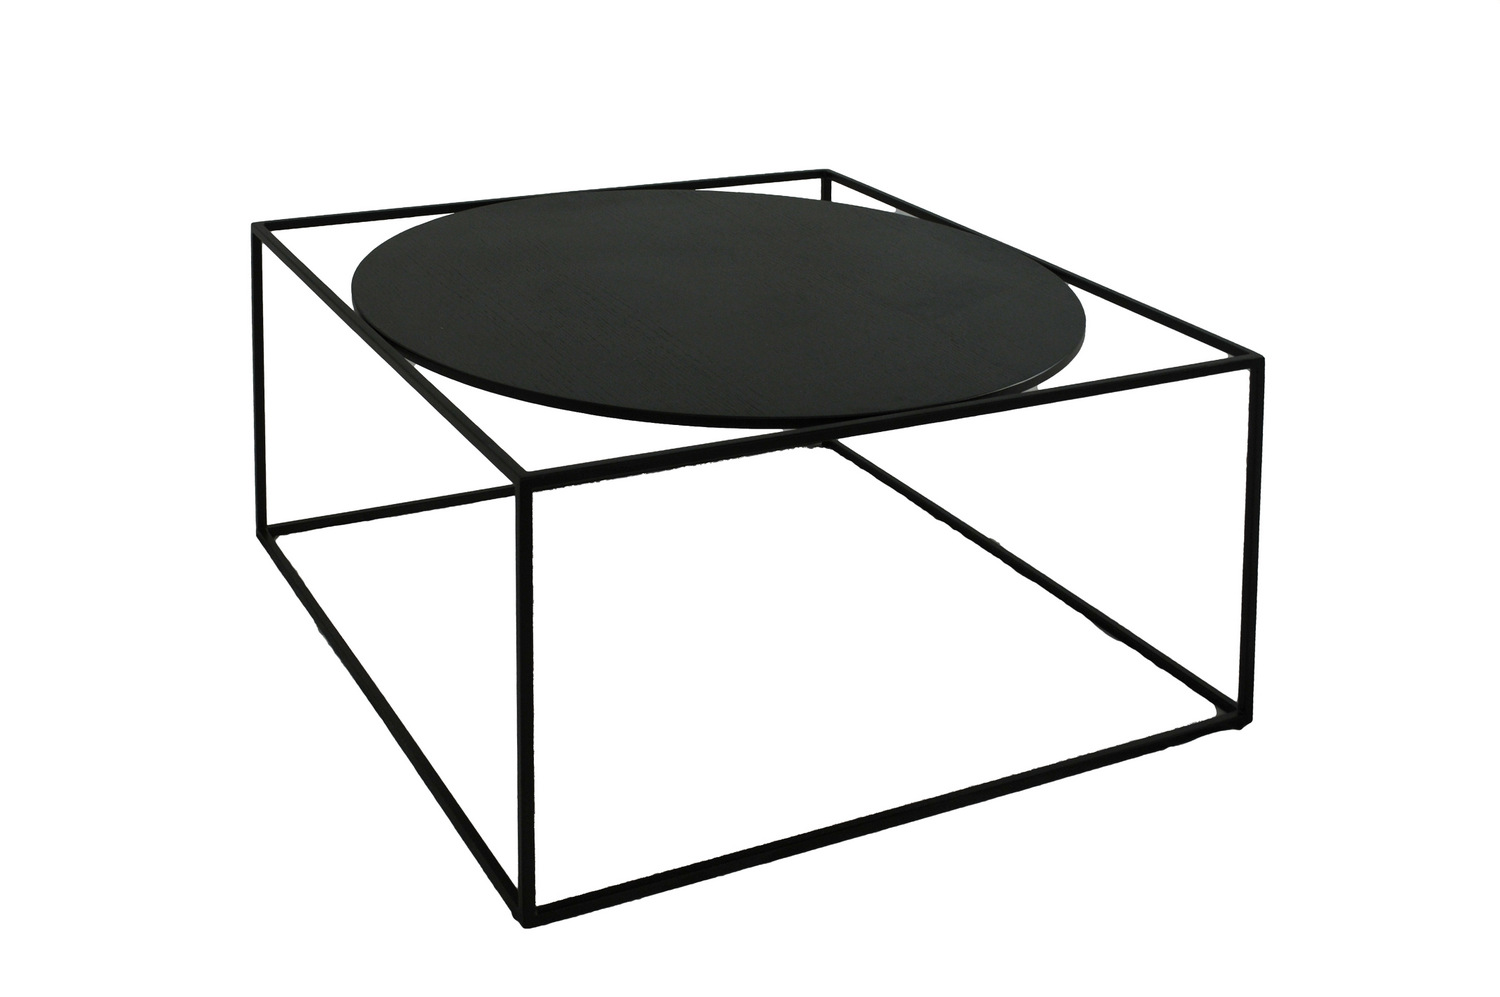 G3 table basse en bois by roche bobois design johan lindst n - Roche bobois table basse ...